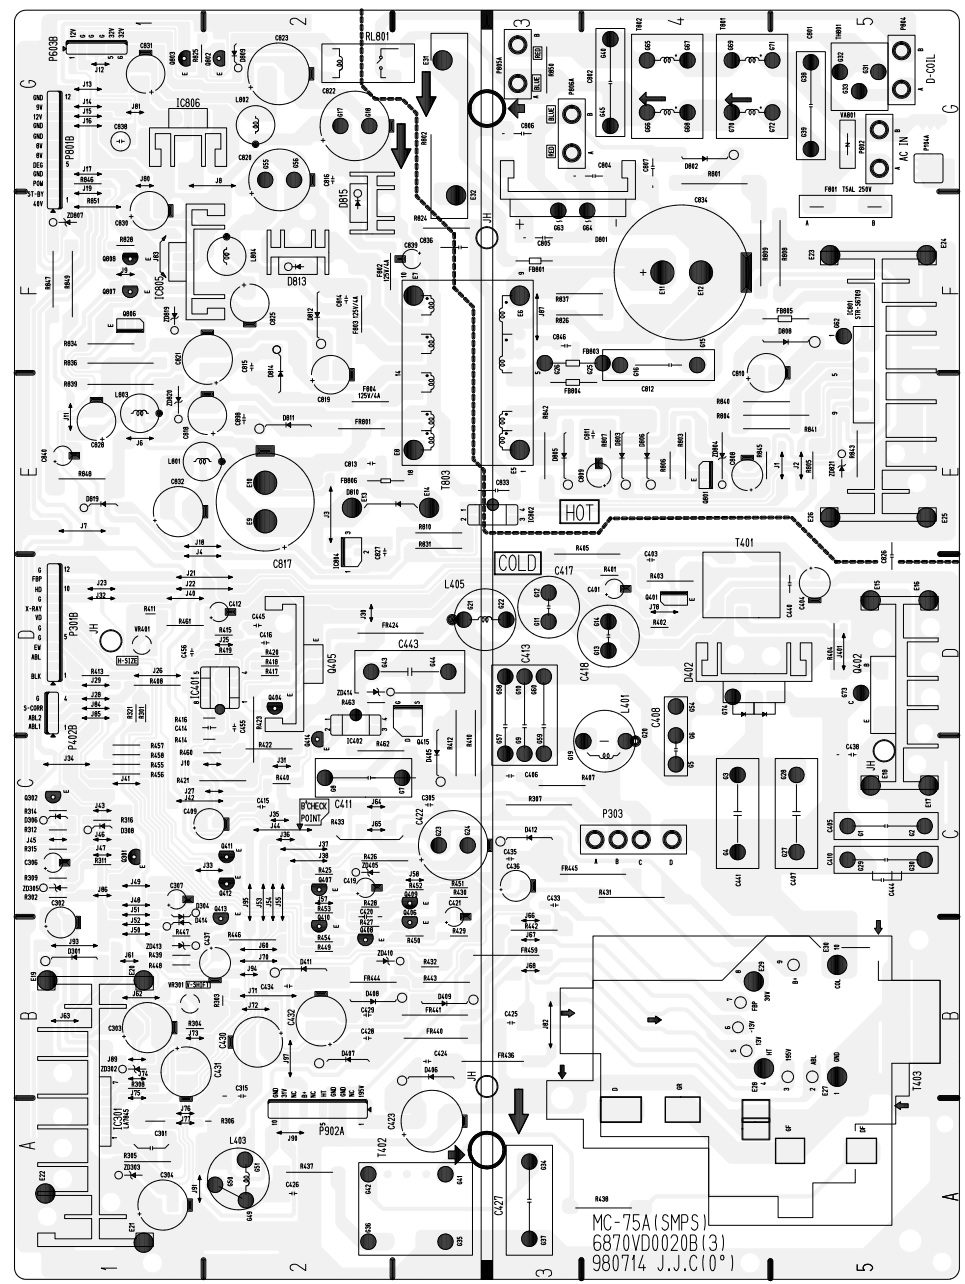 tv sanyo power supply smps schematic circuit diagram